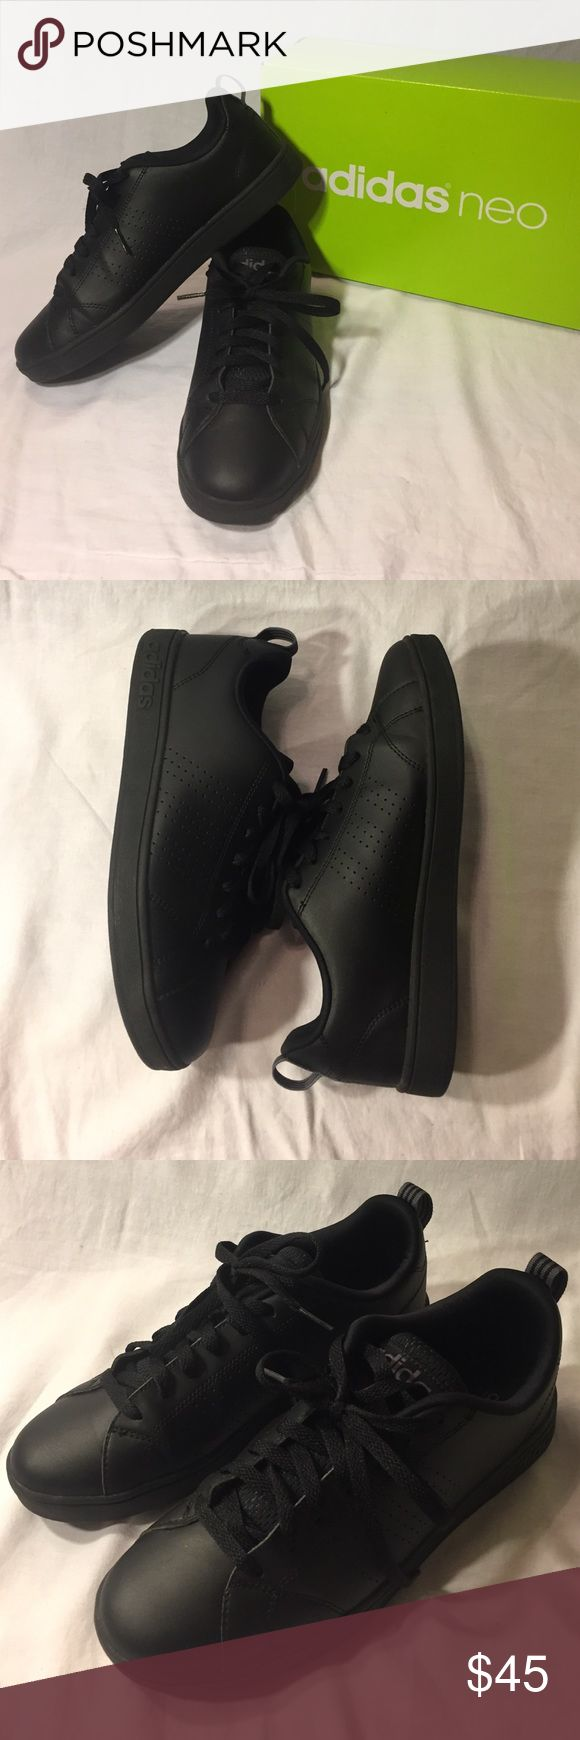 Adidas Neo Advantage Clean VS Semi-Worn // Size 7 in Men's // Synthetic Leather Upper // Textile Lining // Comfortable Adidas Shoes Sneakers